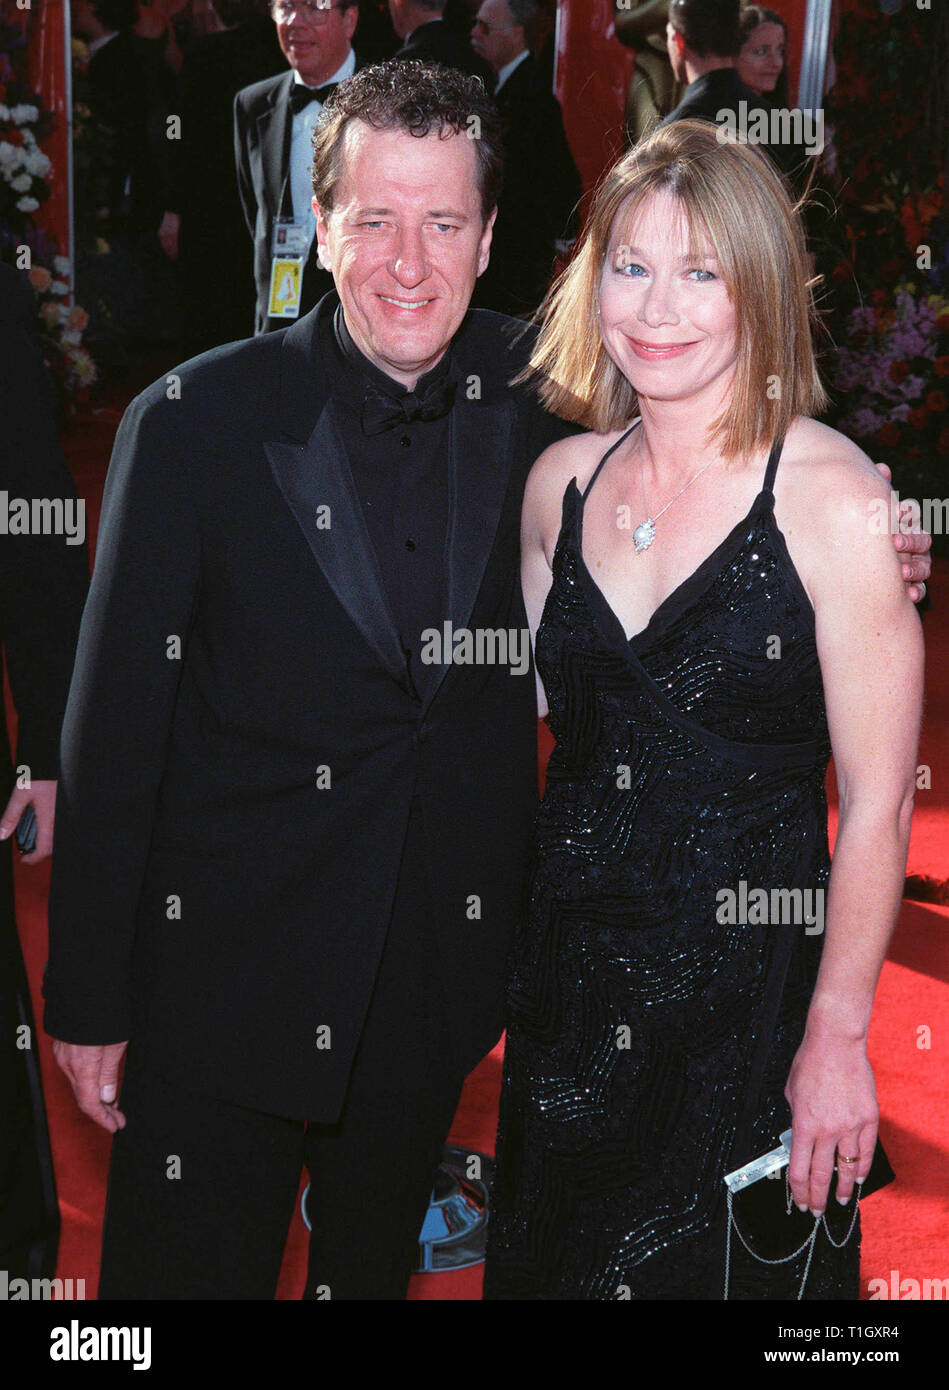 LOS ANGELES, CA - March 22, 1999:  Actor GEOFFREY RUSH & wife at the 71st Academy Awards. © Paul Smith / Featureflash - Stock Image